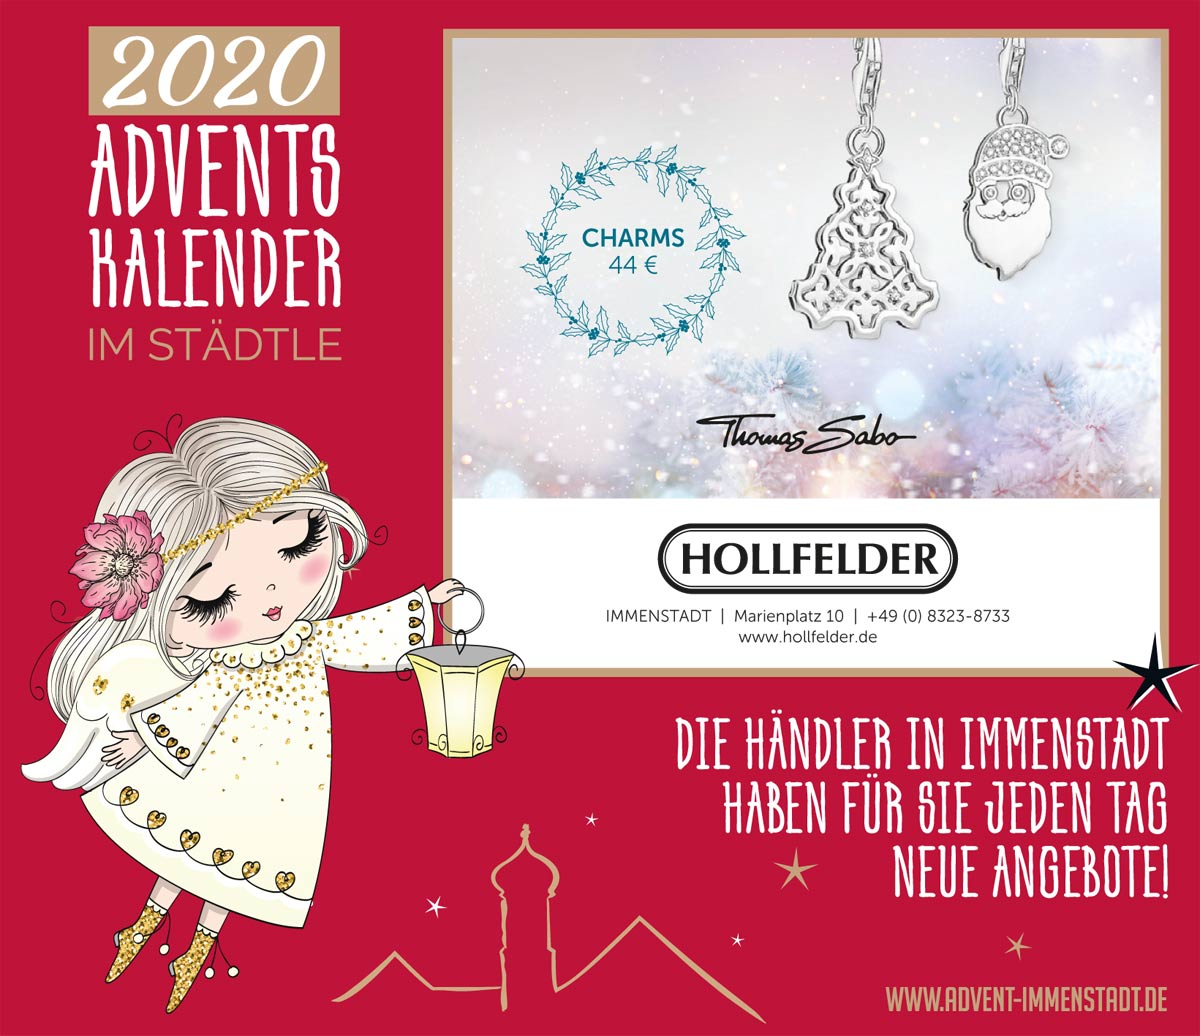 Adventskalender Hollfelder am 03.12.2020